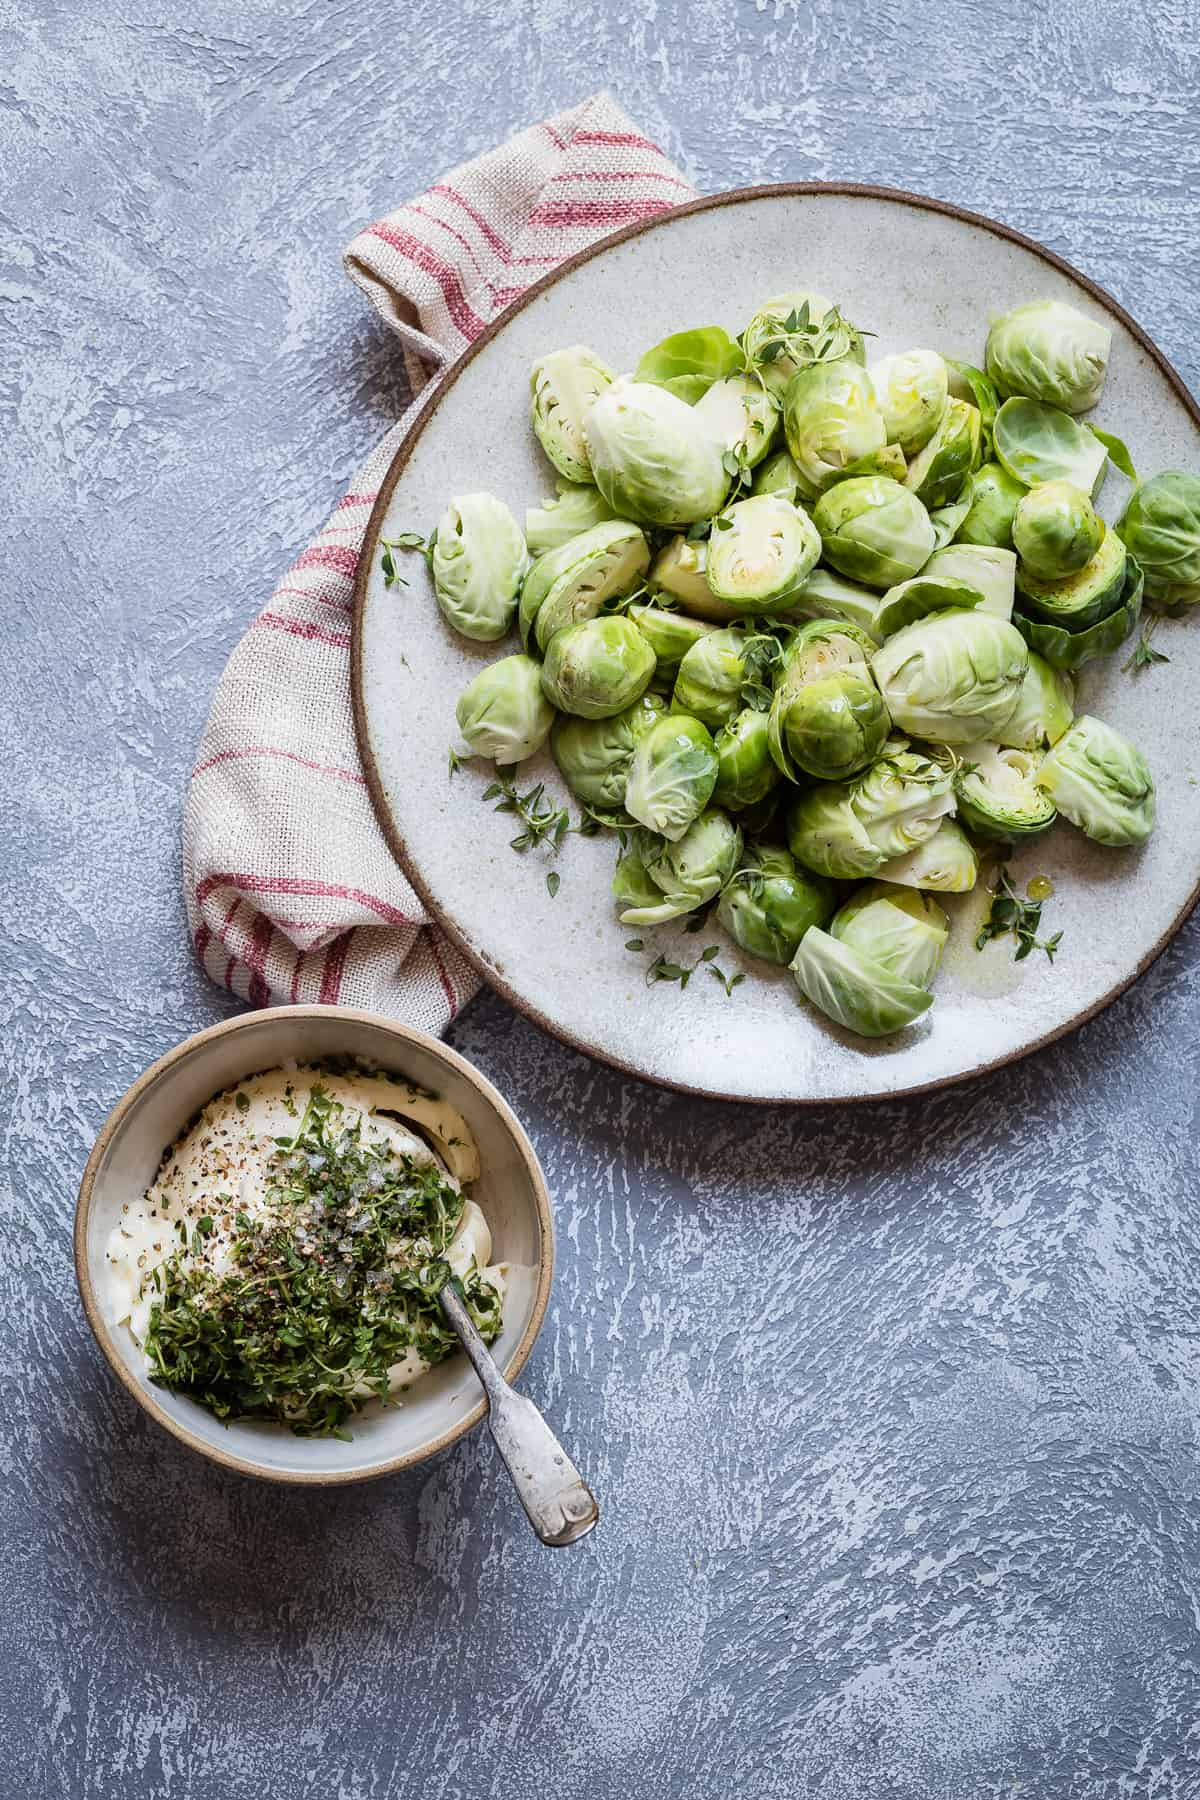 Try roasting your brussels sprouts and then tossing them in butter!